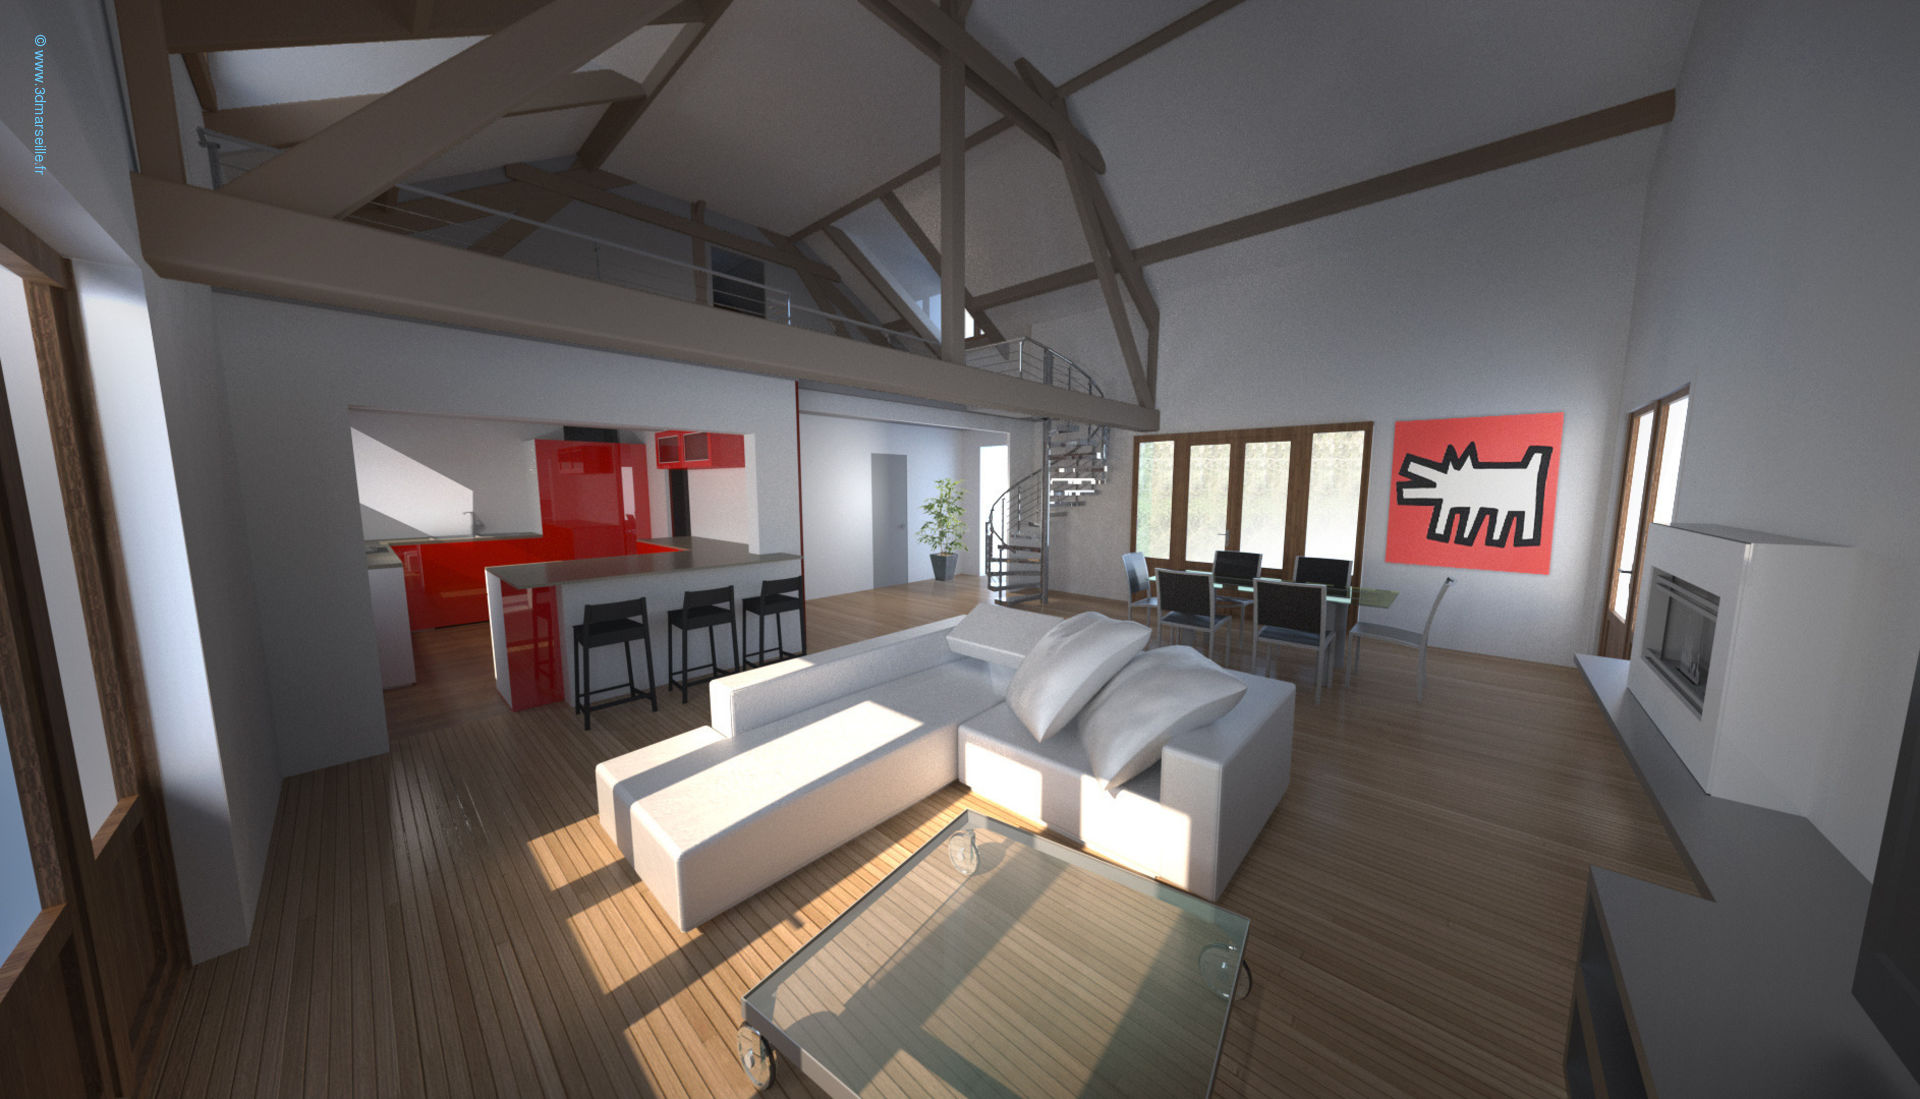 Projet d am nagement int rieur maison individuelle 3d for Photo en interieur